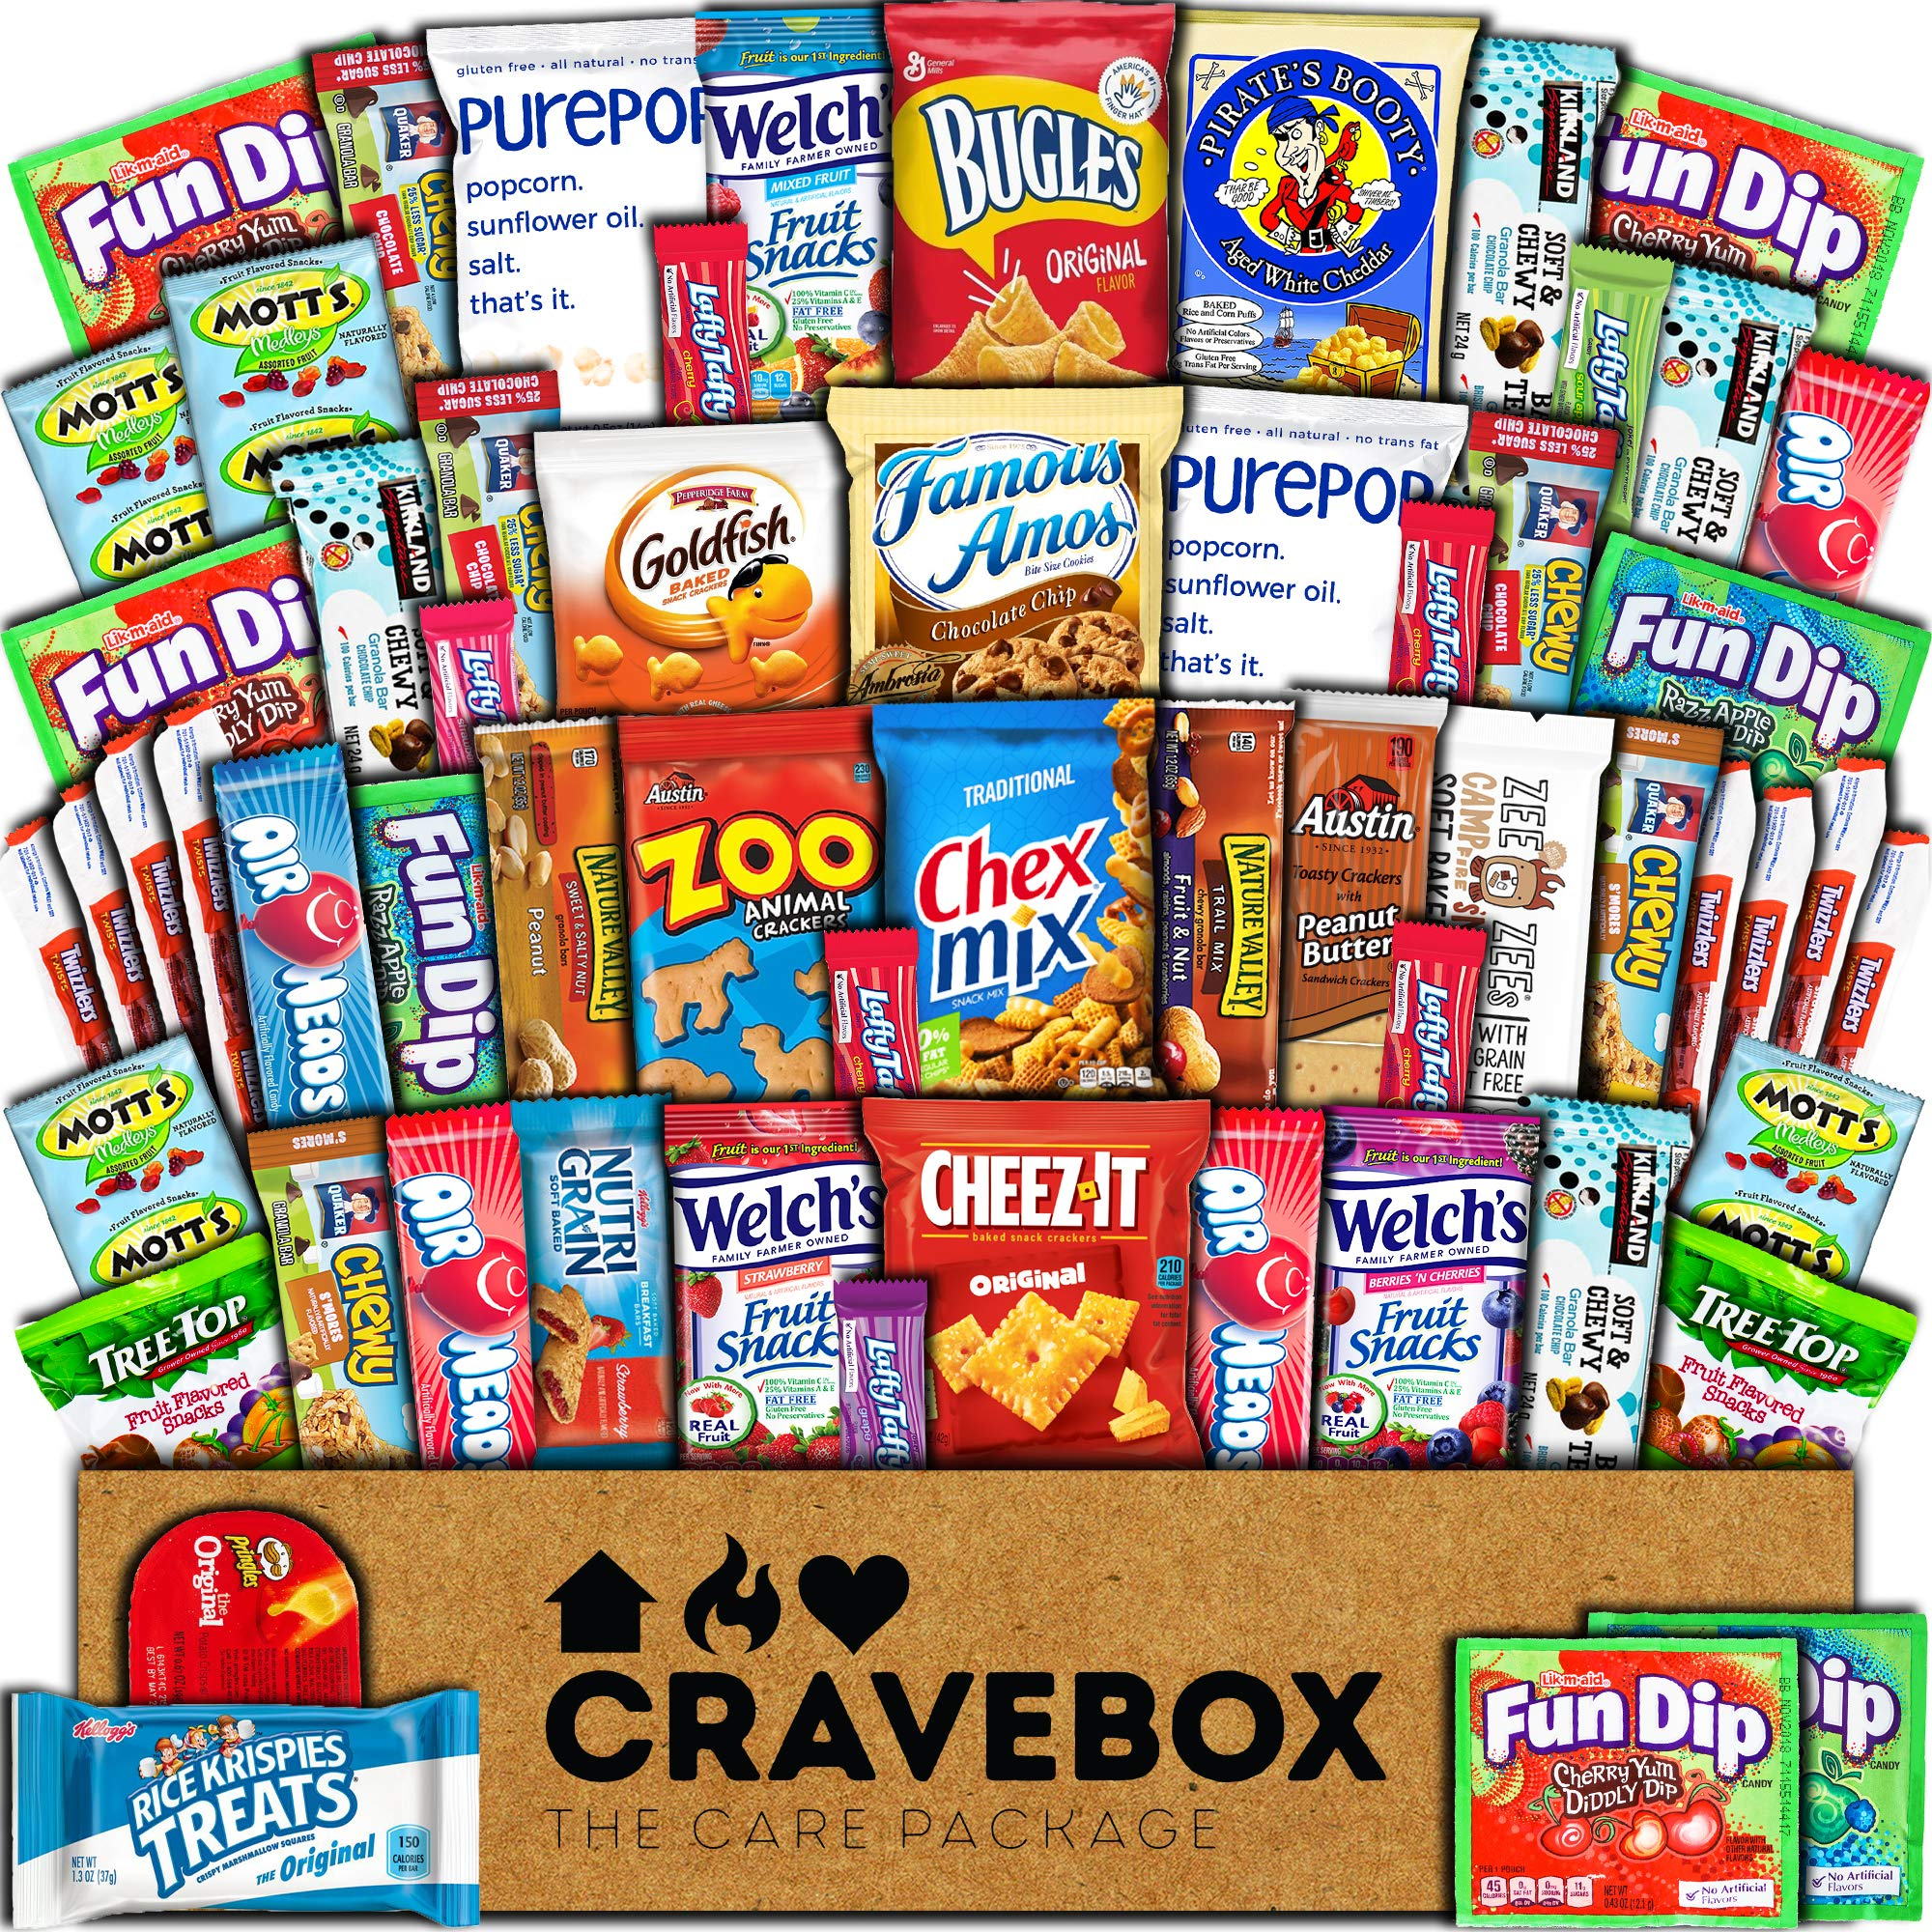 CDM product CraveBox Care Package (60 Count) Snacks Cookies Bars Chips Candy Ultimate Variety Gift Box Pack Assortment Basket Bundle Mixed Bulk Sampler Treats College Students Office Fall Back to School Halloween big image